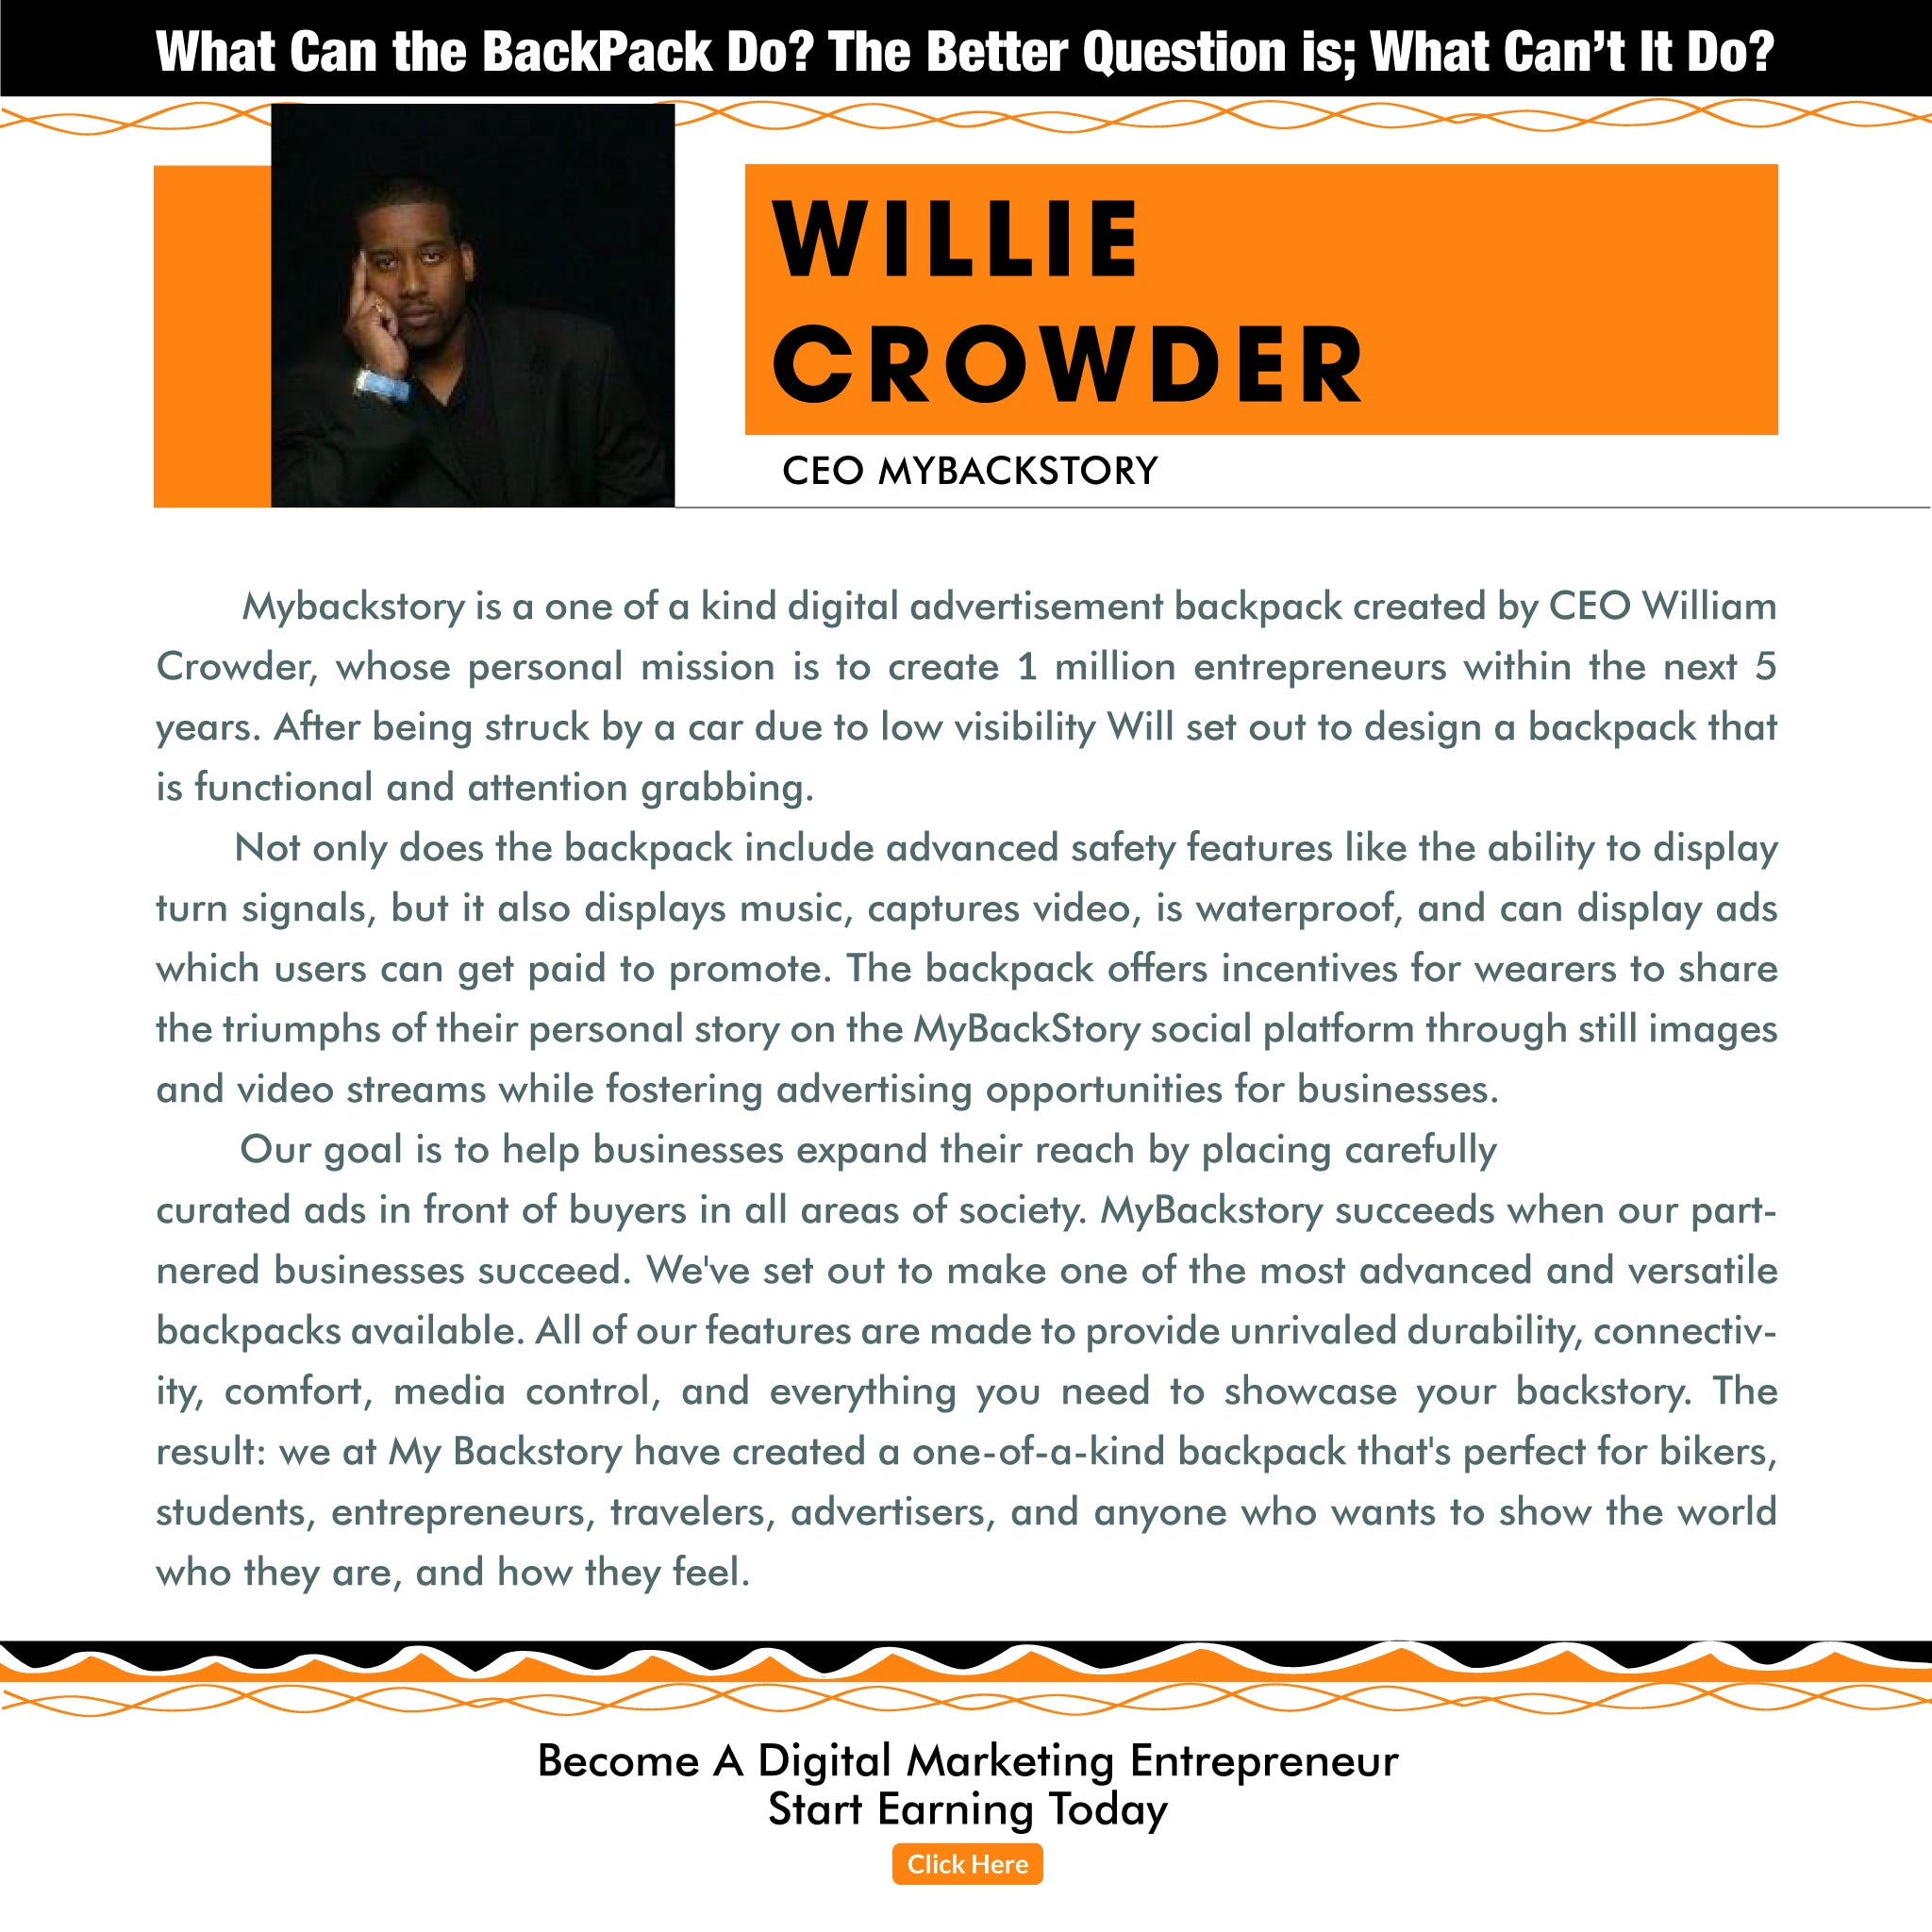 Willie Crowder